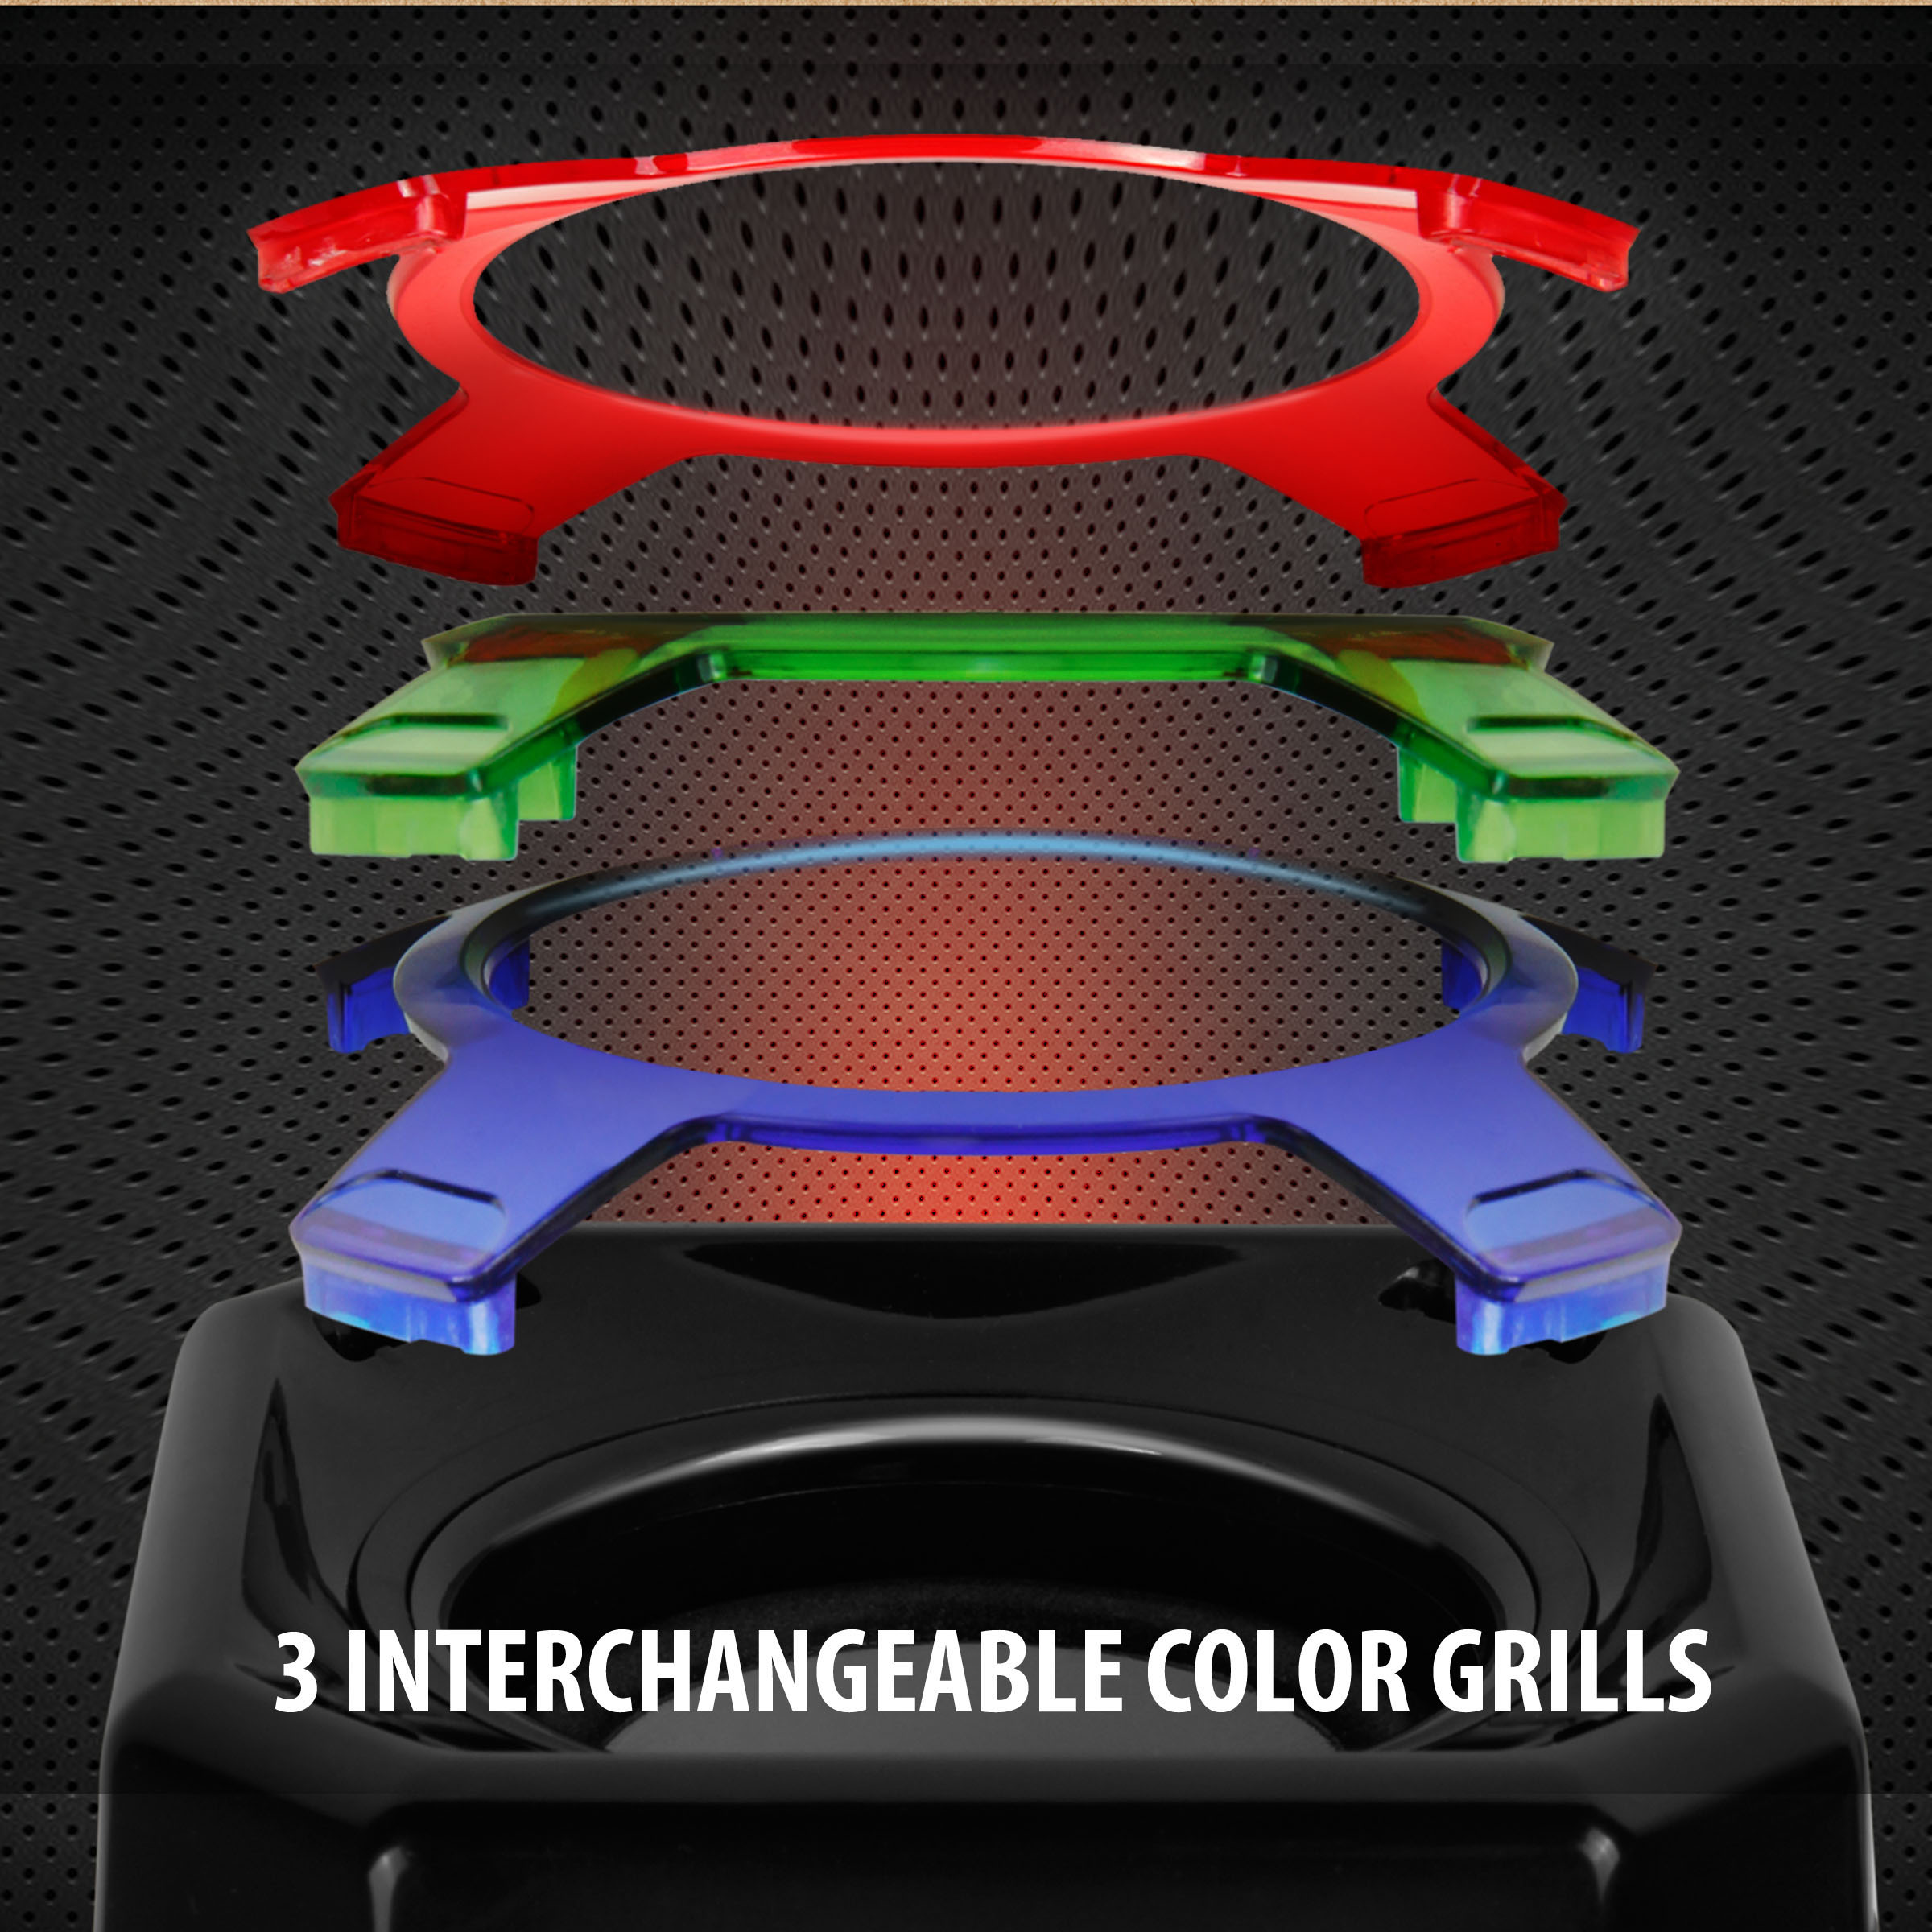 GOgroove SonaVERSE GS3 USB Gaming Speakers with Interchangeable Grills & Powerful 5W Drivers 2